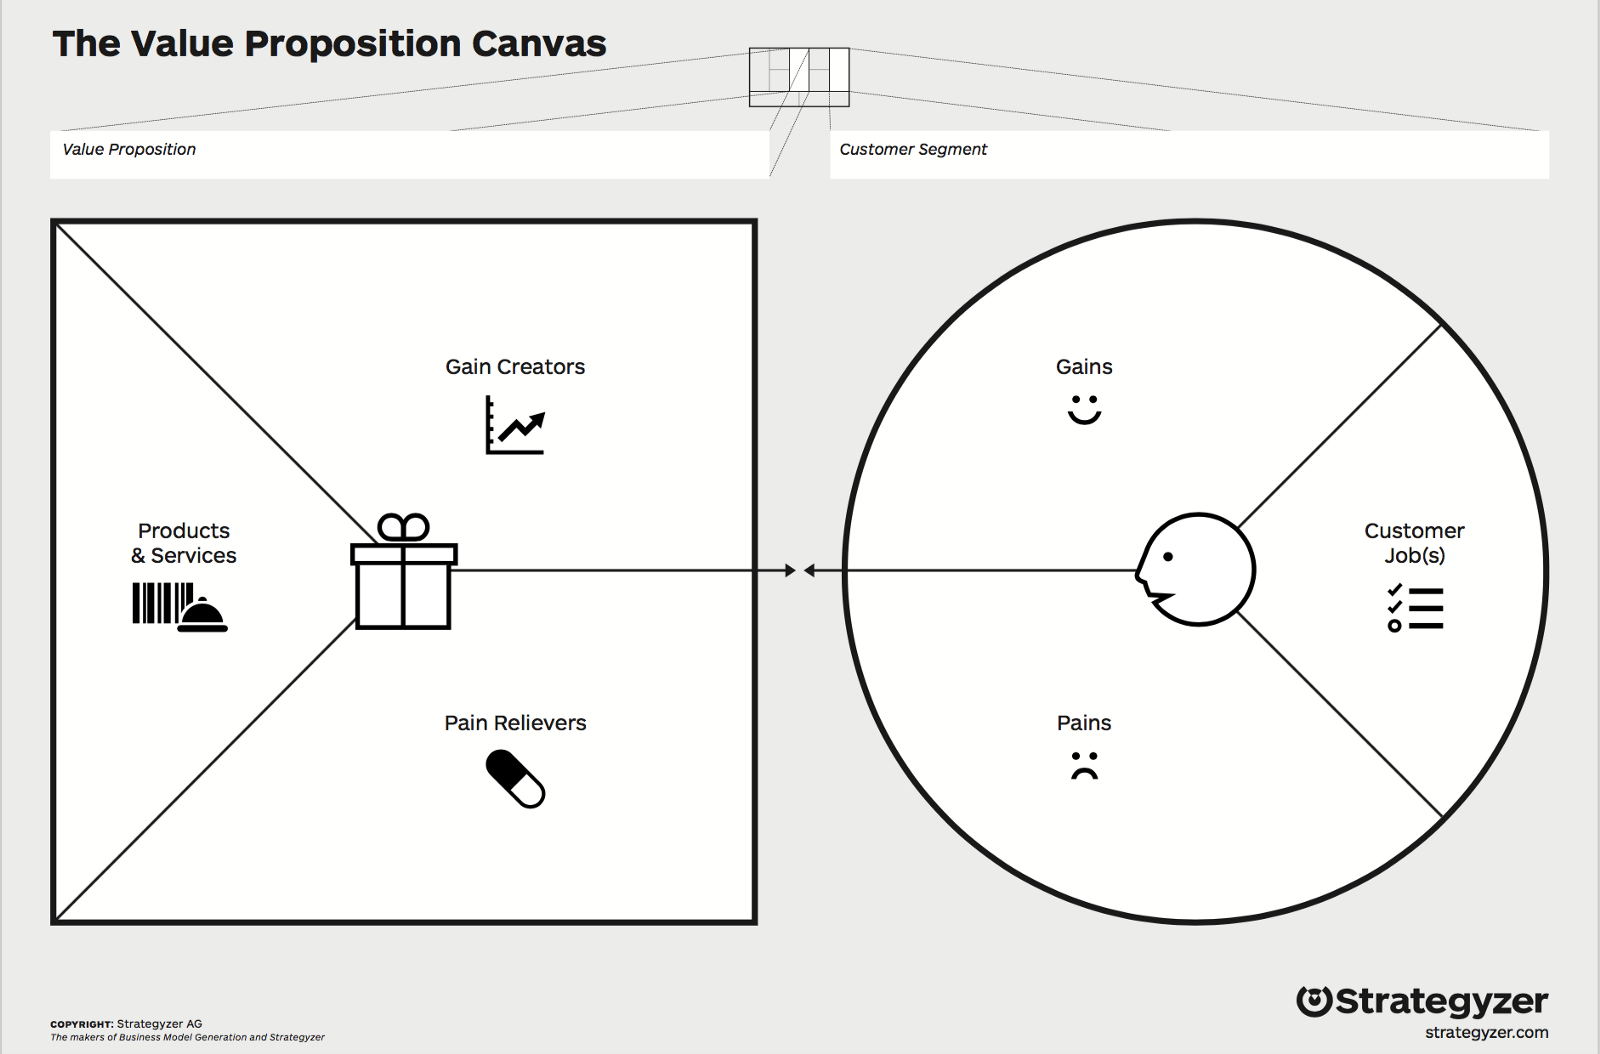 Value proposition prototypr the value proposition canvas by strategyzer wajeb Images